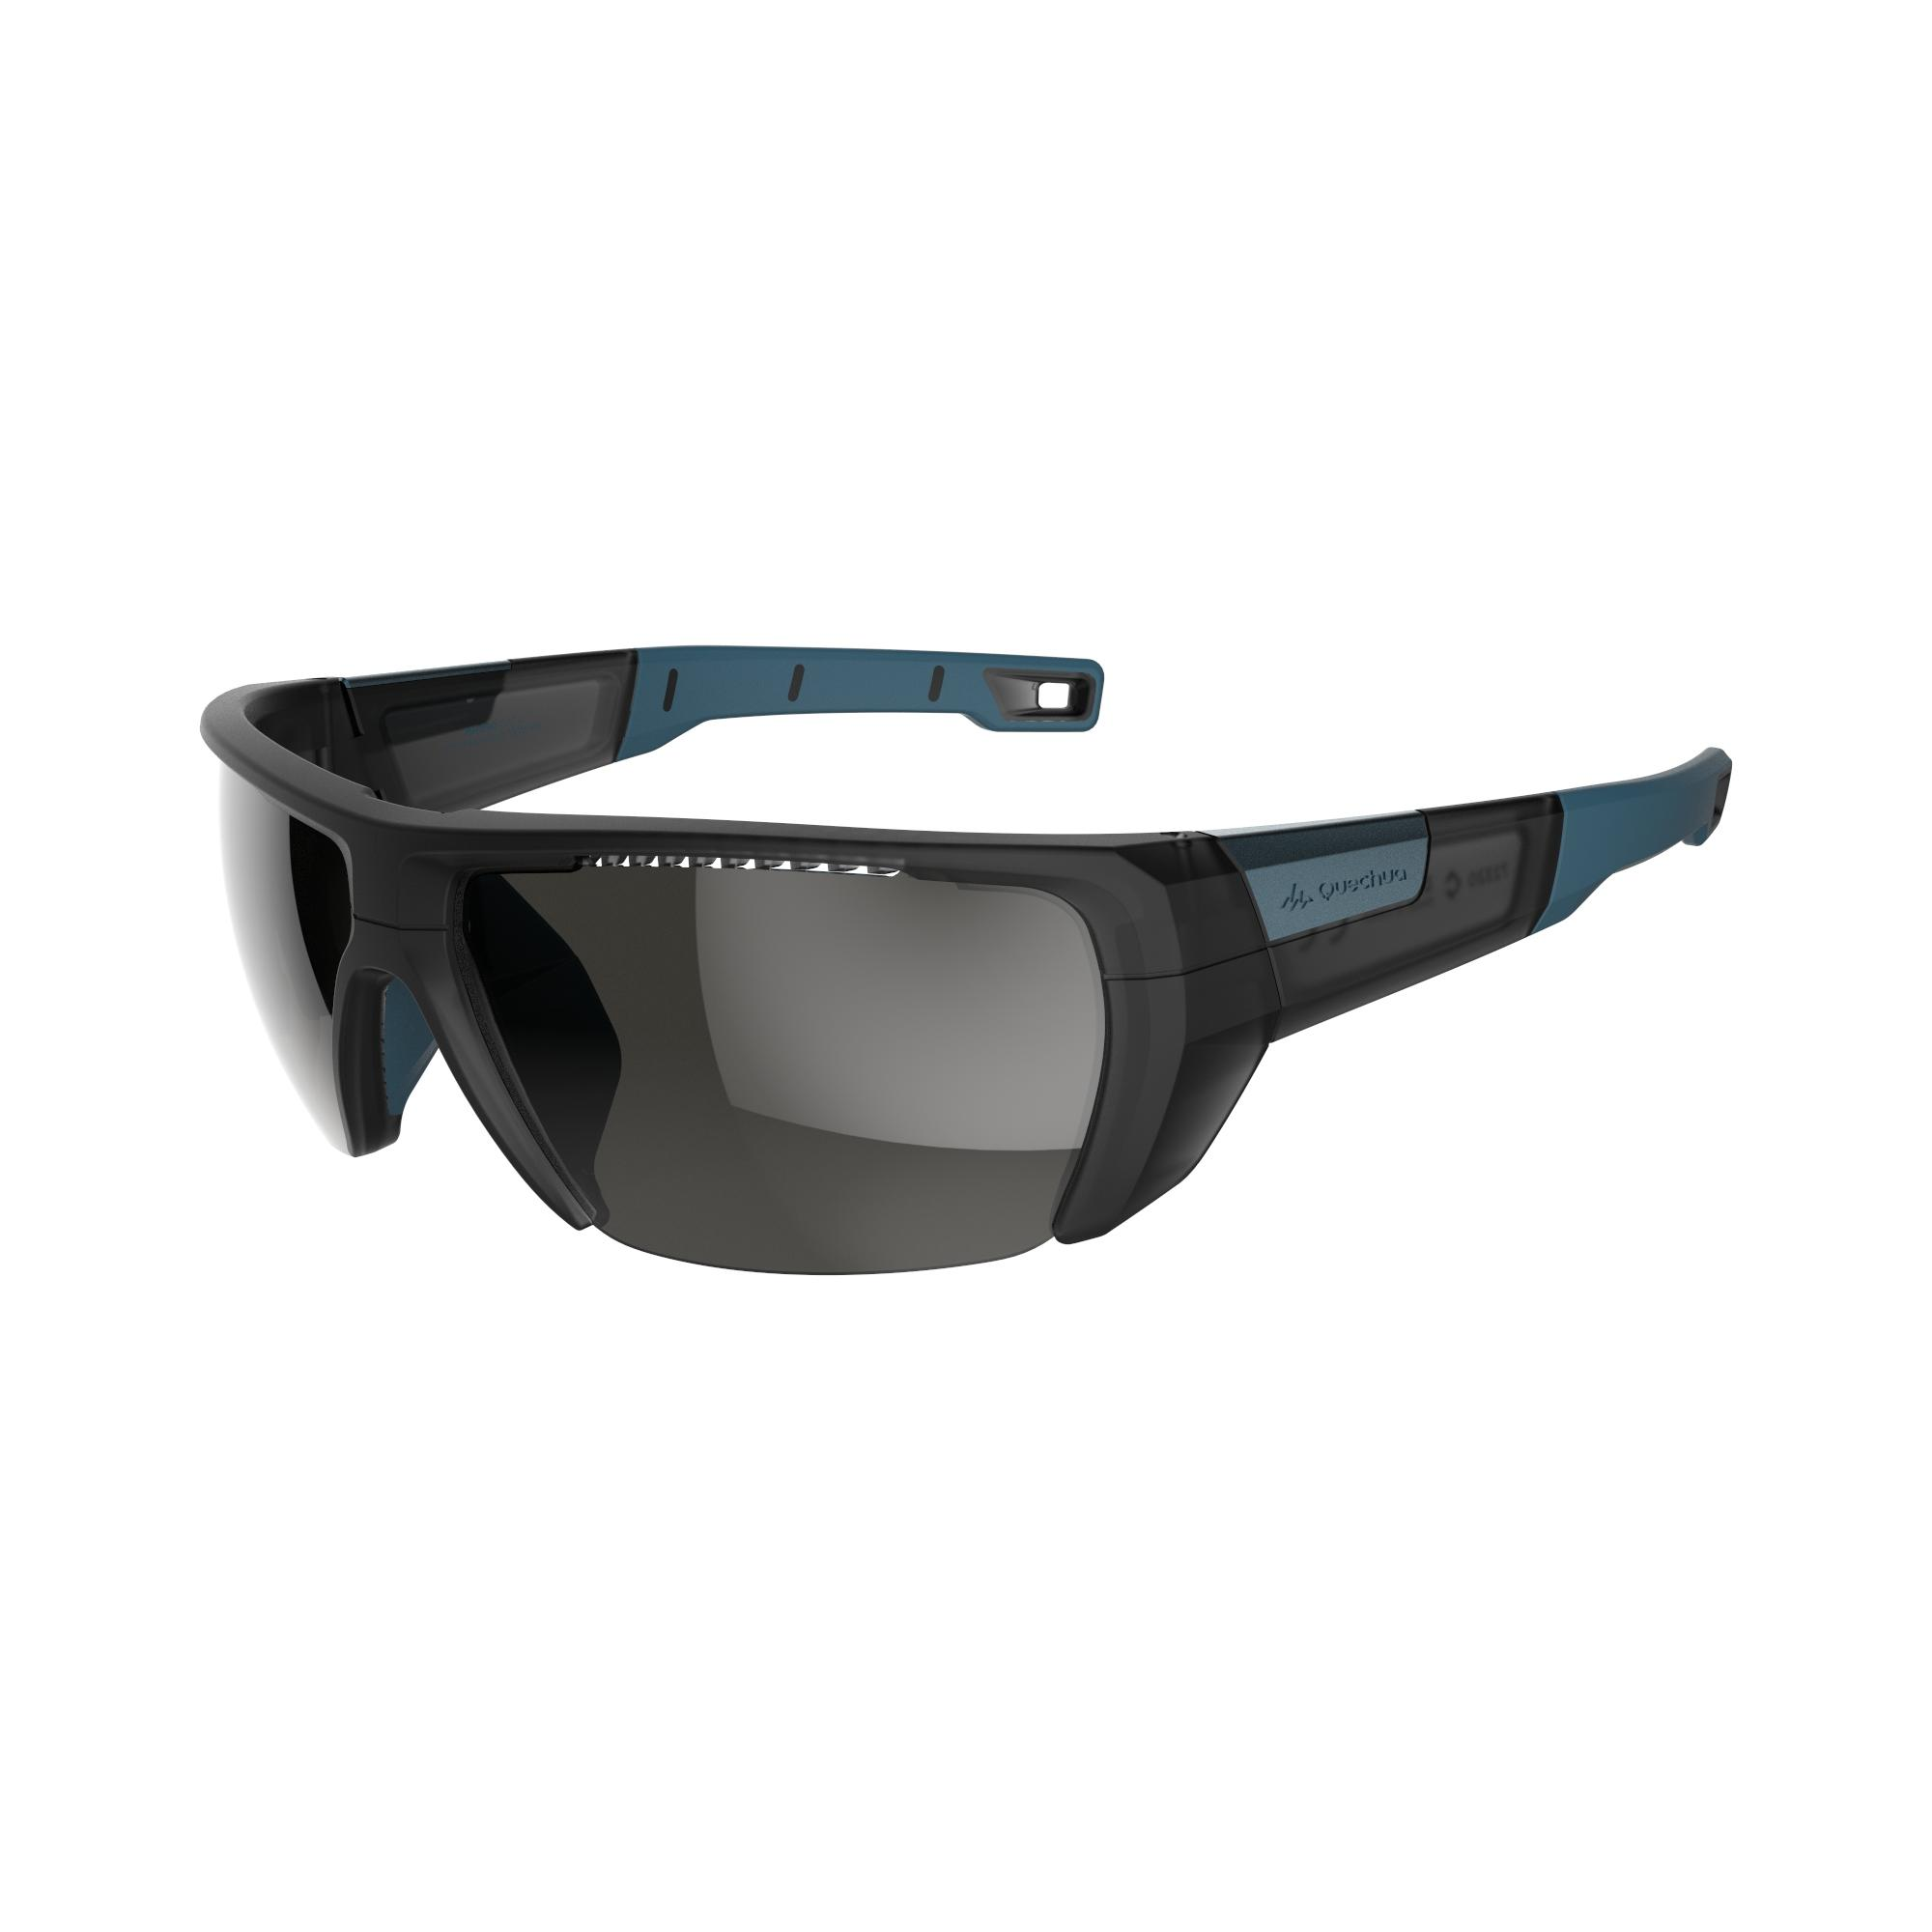 MH 590 Adult Category 4 Hiking Glasses - Black & Blue